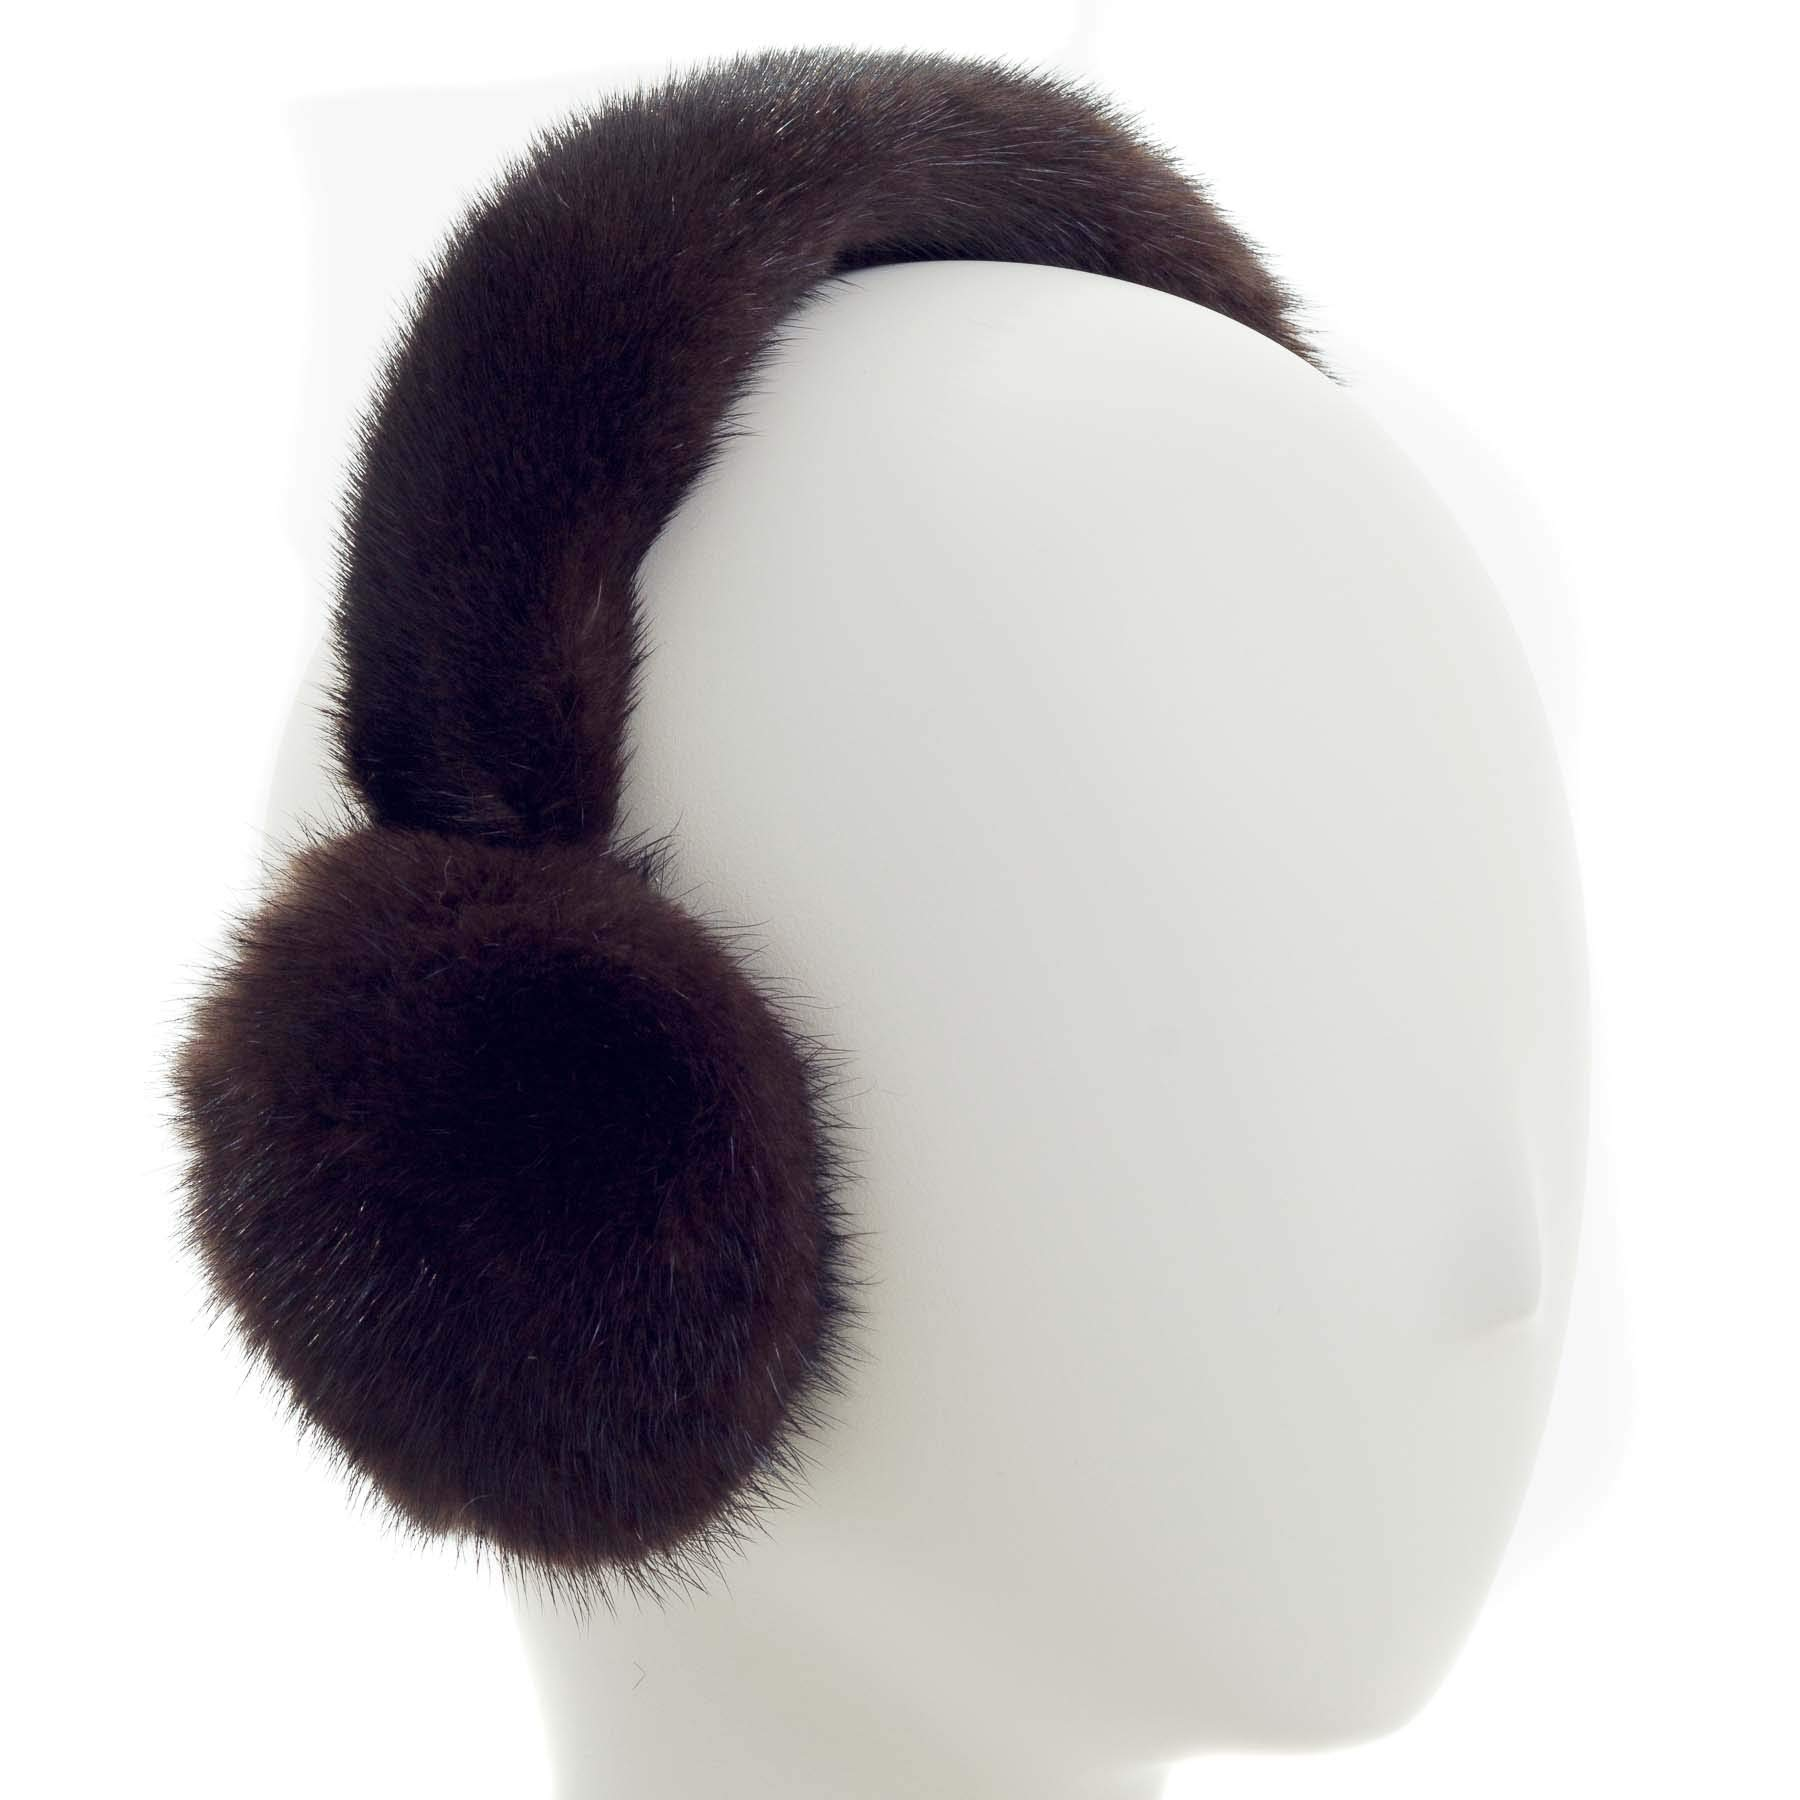 Surell Mink Earmuff with Fur Halo Band - Winter Ear Muffs - Cold Weather Fashion (Mohagony)